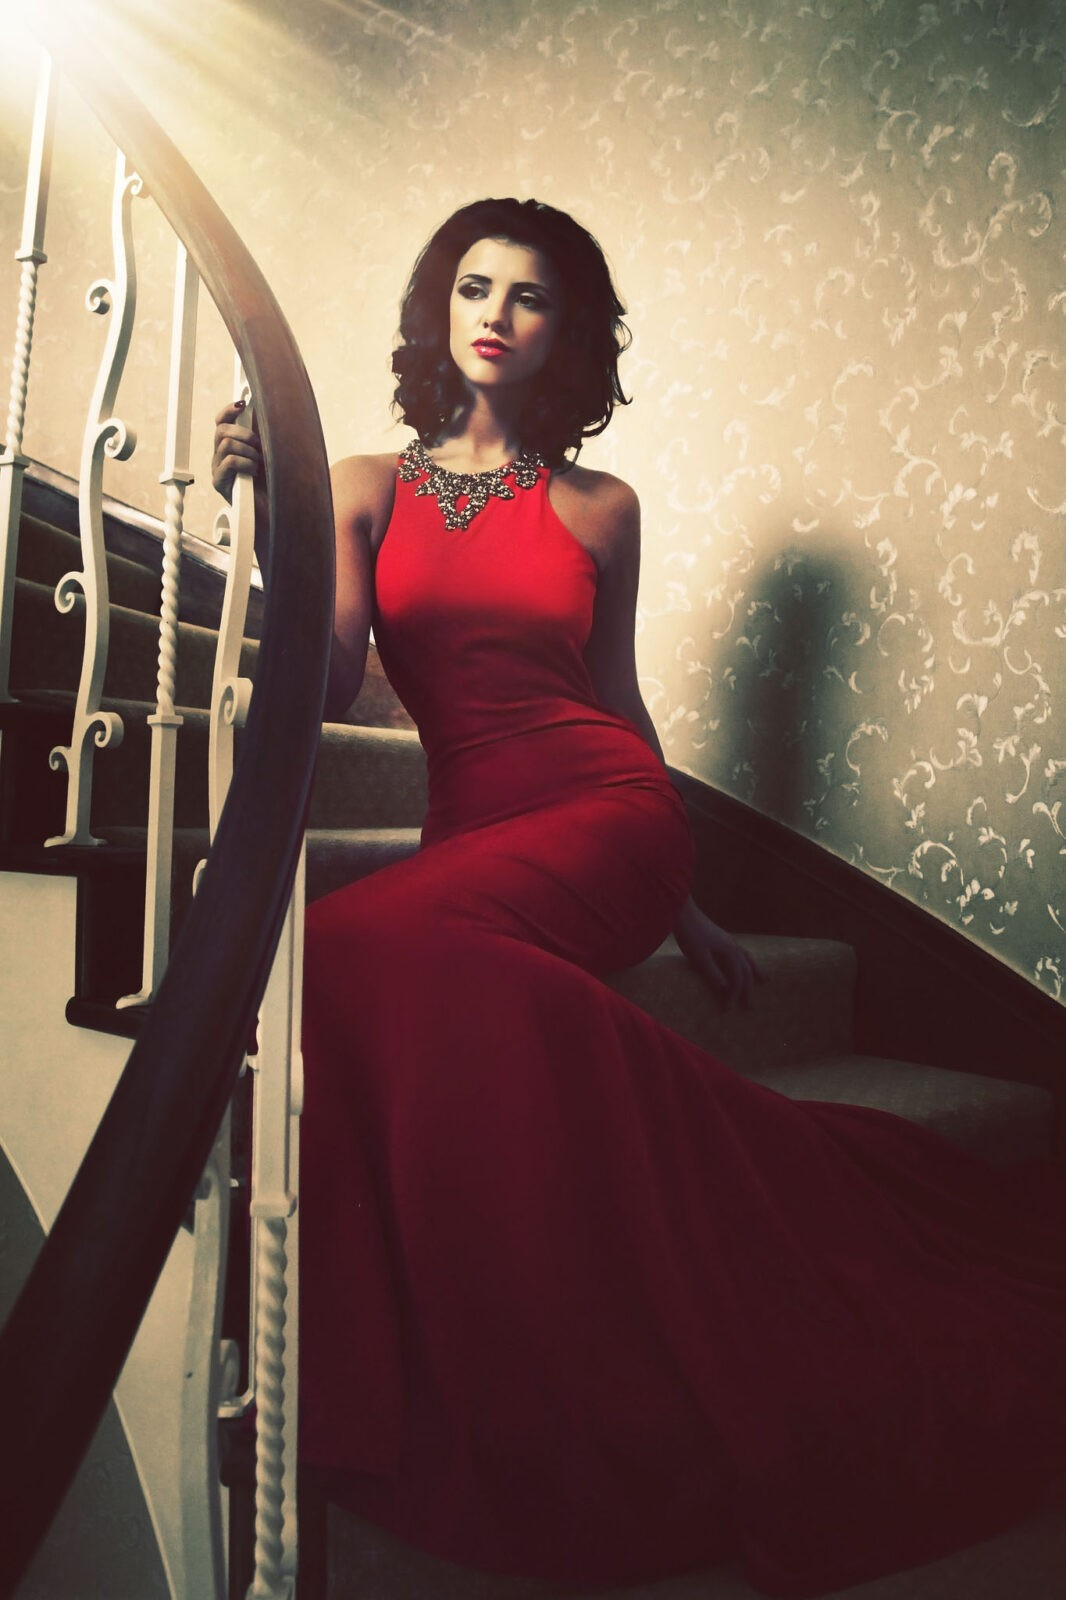 Lucy Mecklenburgh wallpaper for Android free